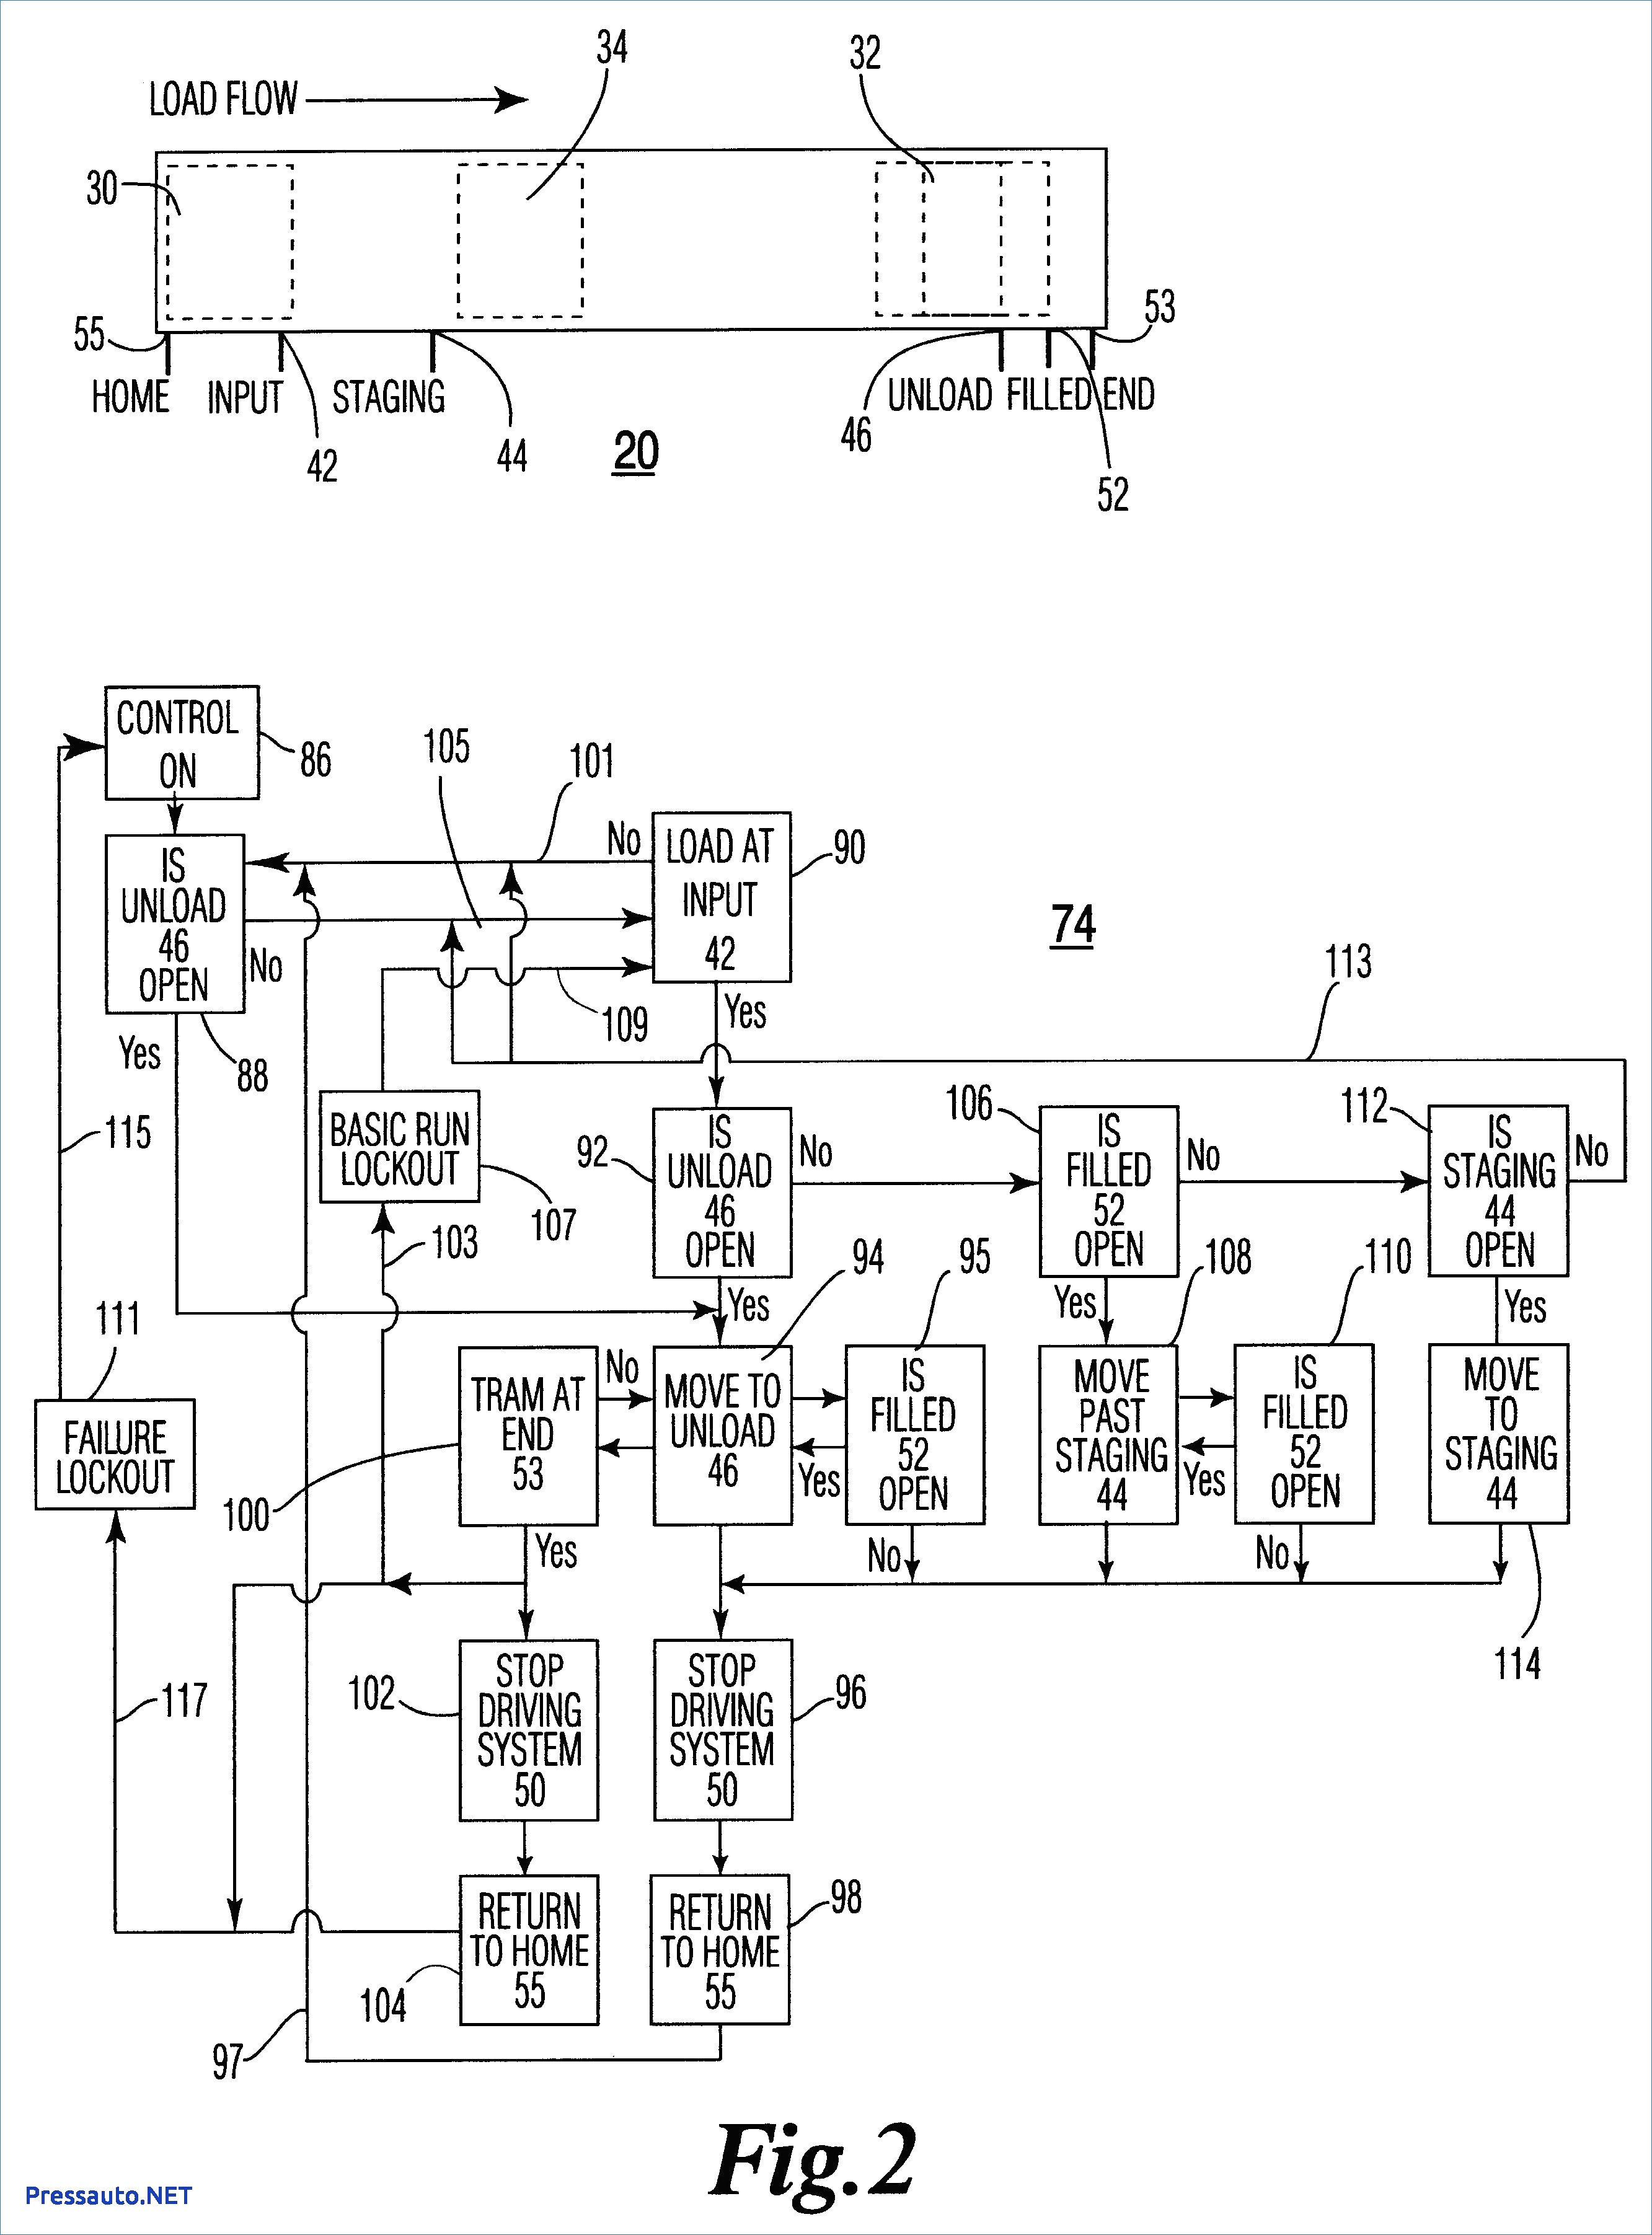 Acme Transformer Wiring Diagrams 277 120 Acme Circuit Diagrams - Acme Transformer Wiring Diagram